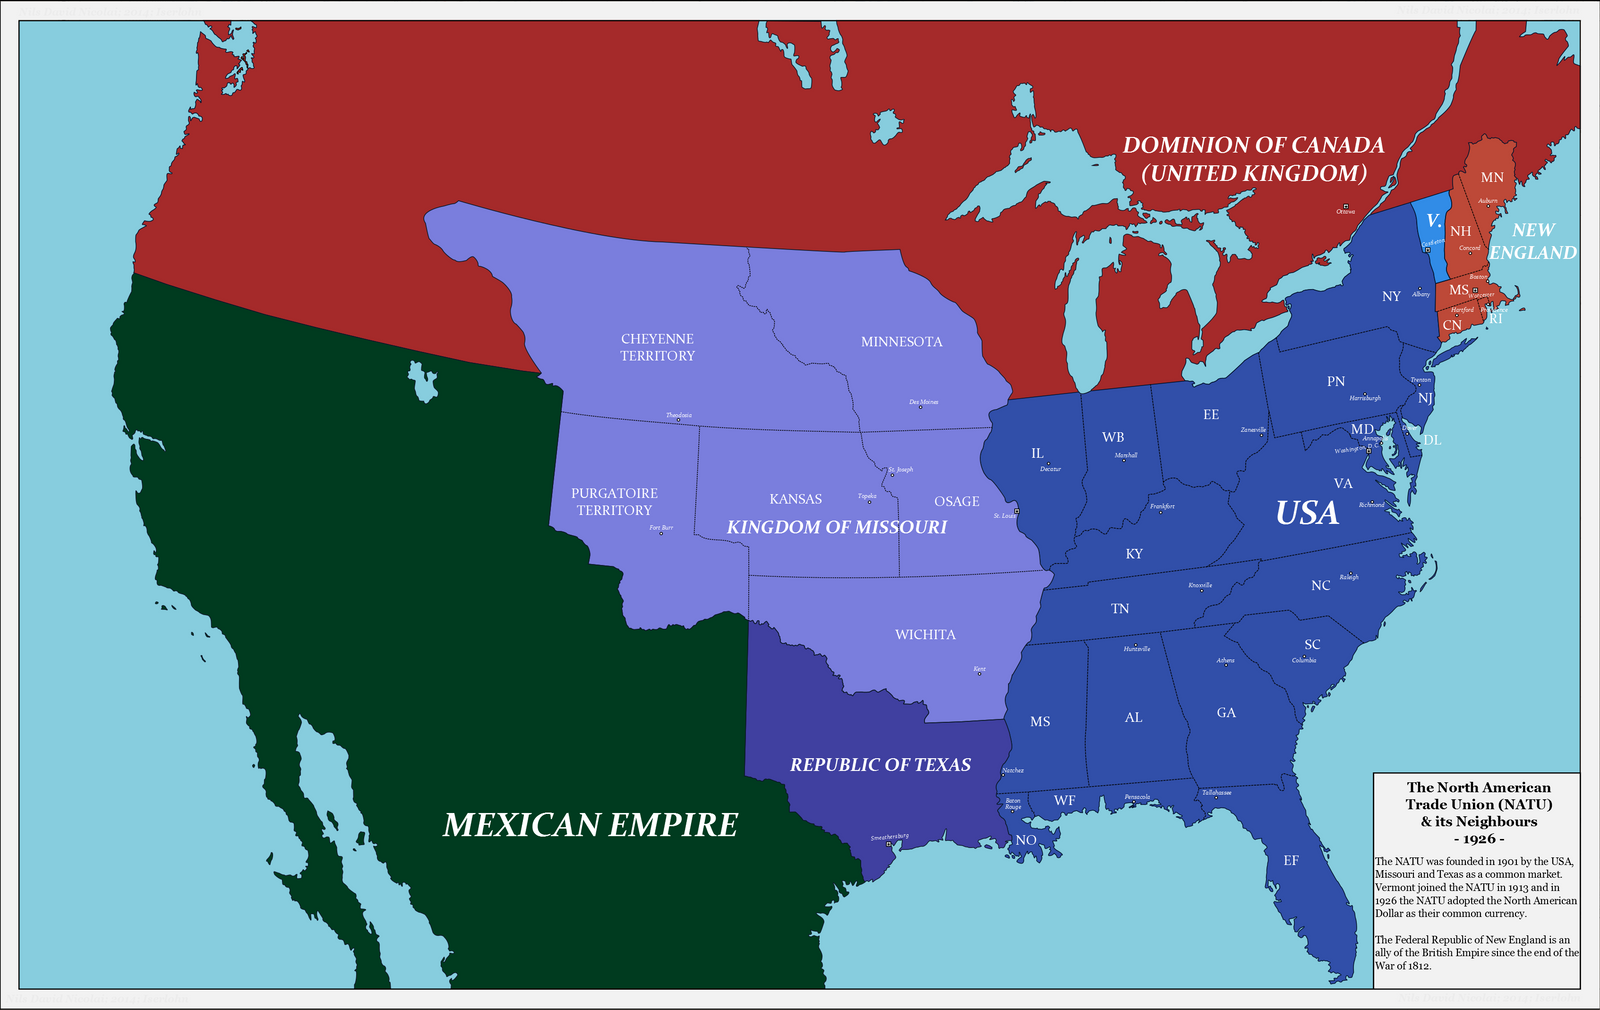 war of 1812 map with The North American Trade Union 433153851 on File Colonisation 1812 together with IMG 4586 s2a likewise Otmena krepostn prava 2v as well 3936154182 together with Showthread.